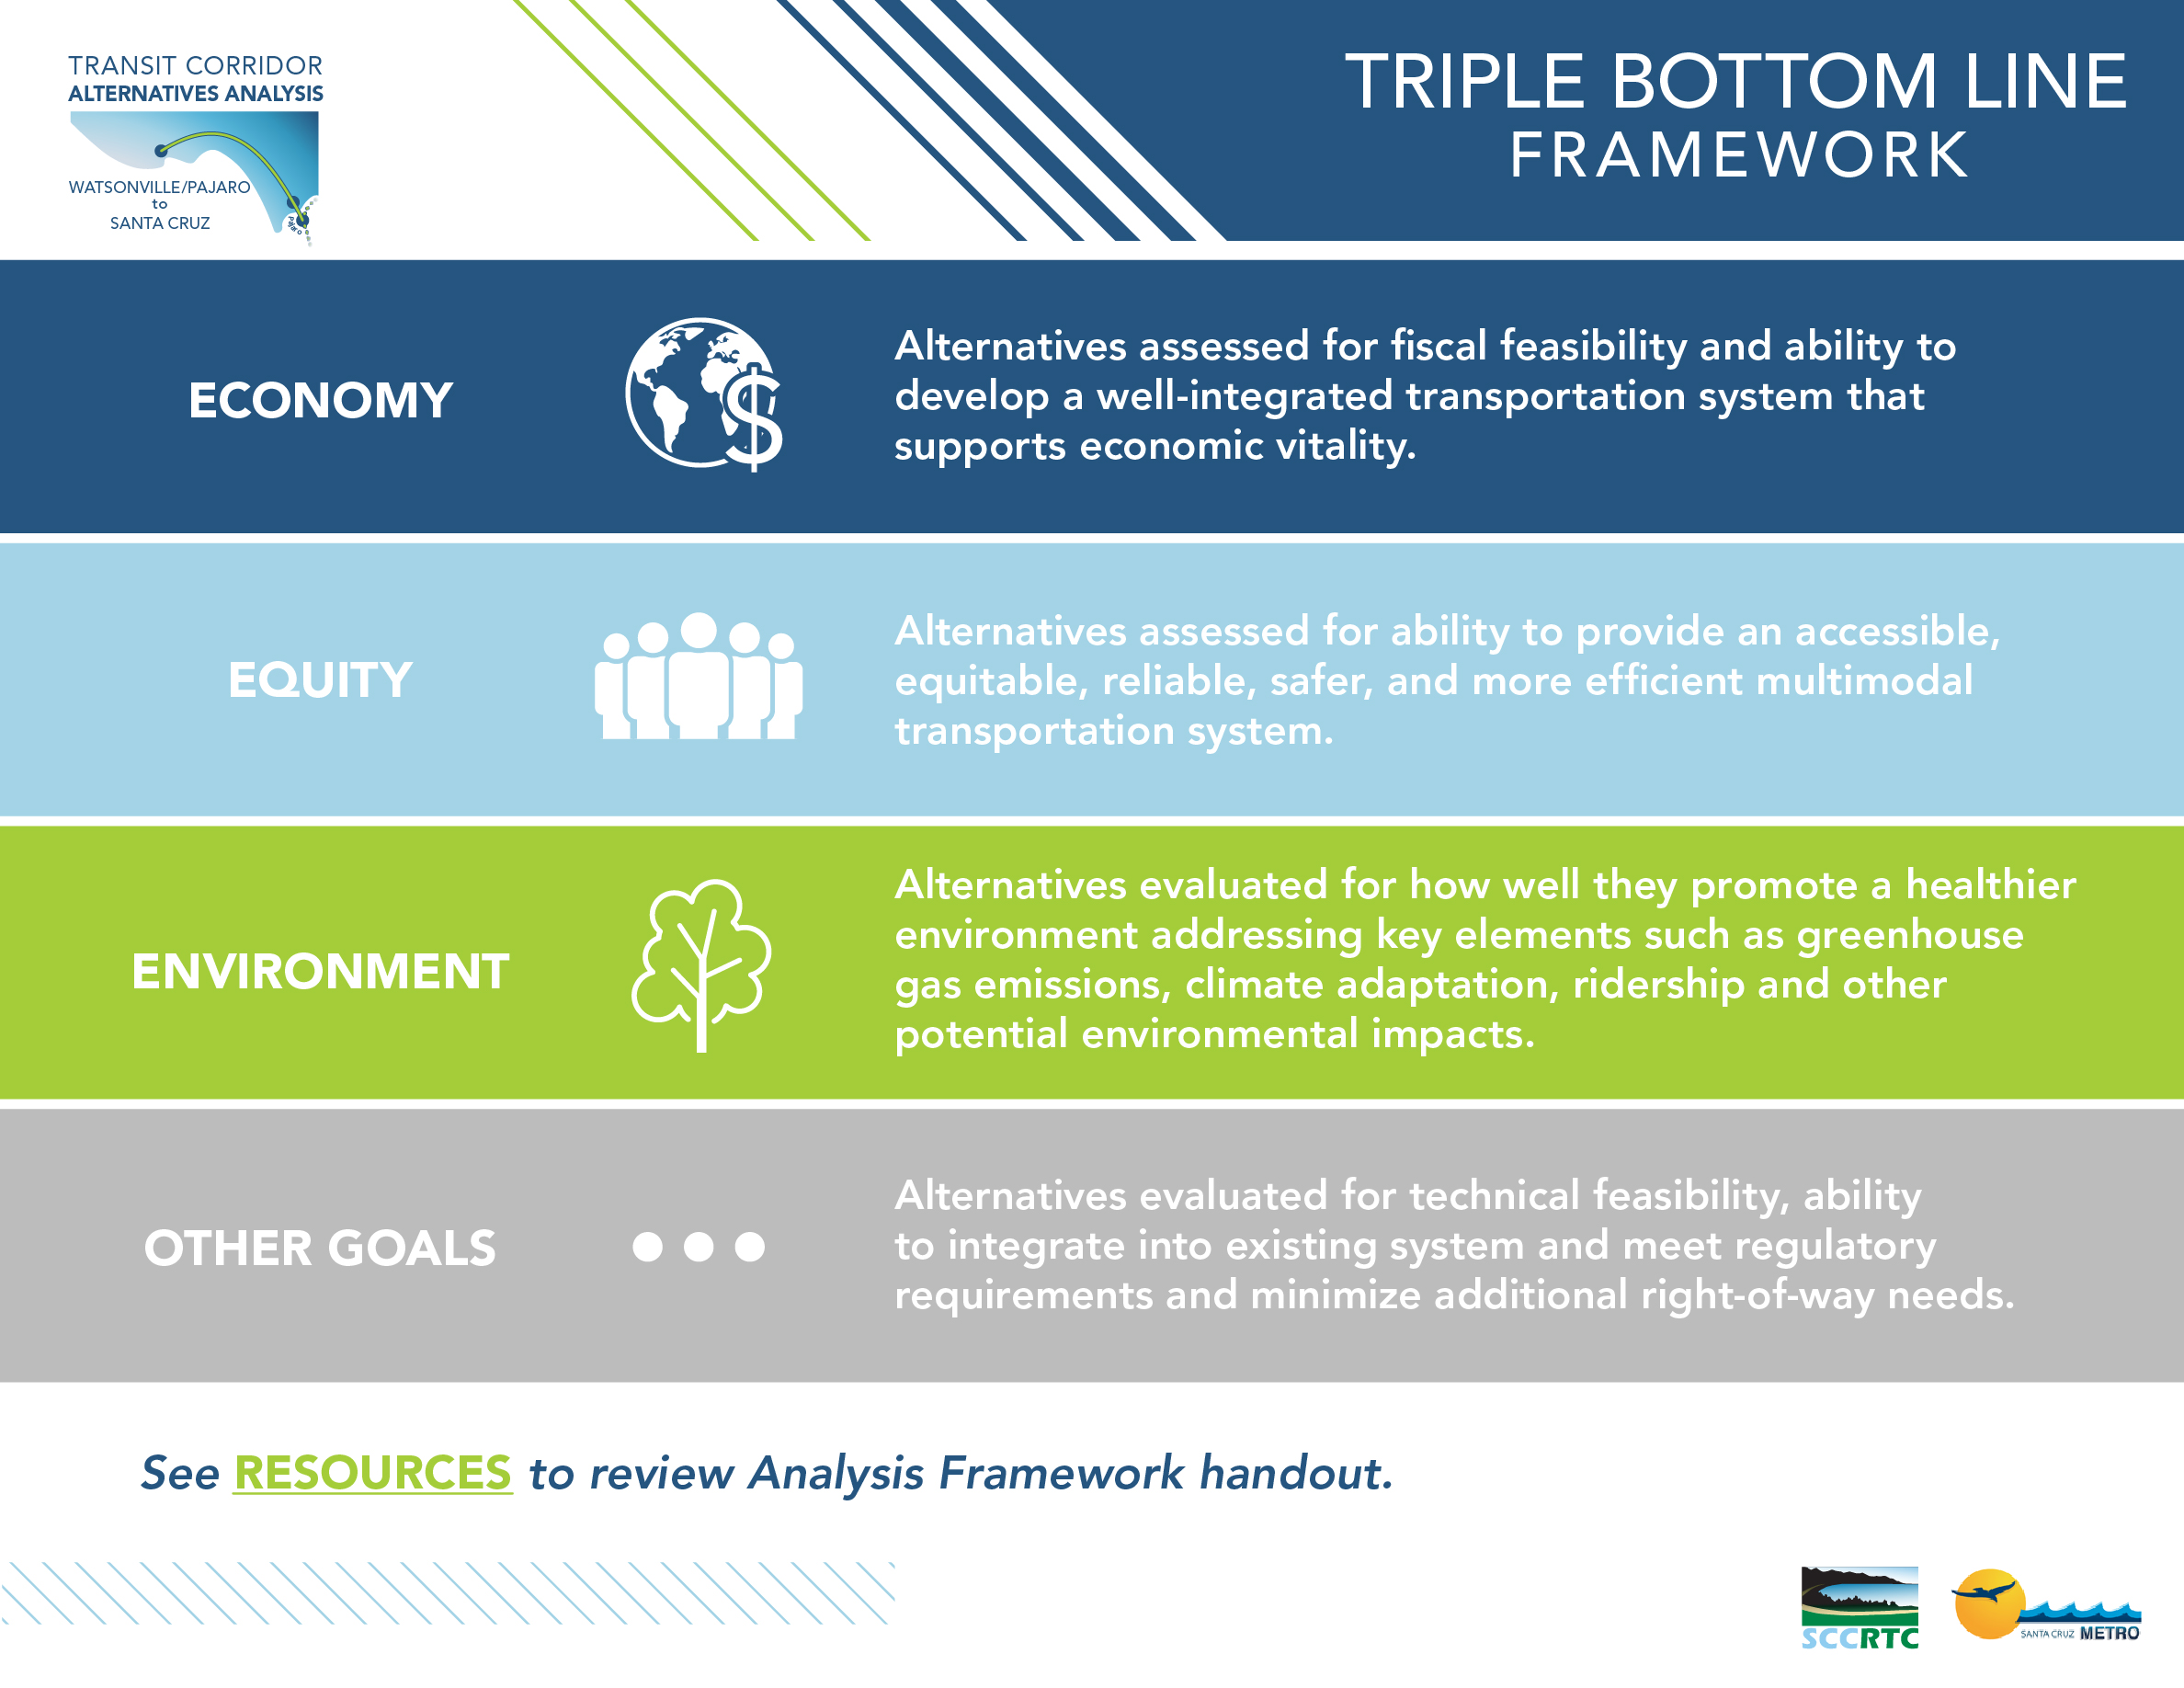 Board 2: Triple Bottom Line Framework Economy: Alternatives assessed for fiscal feasibility and ability to develop a well-integrated transportation system that supports economic vitality. Equity: Alternatives assessed for ability to provide an accessible, equitable, reliable, safer, and more efficient multimodal transportation system. Environment: Alternatives evaluated for how well they promote a healthier environment addressing key elements such as greenhouse gas emissions, climate adaptation, ridership and other potential environmental impacts. Other: Alternatives evaluated for technical feasibility, ability to integrate into existing system and meet regulatory requirements and minimize and minimize additional right-of-way needs. See RESOURCES to review Analysis Framework handout